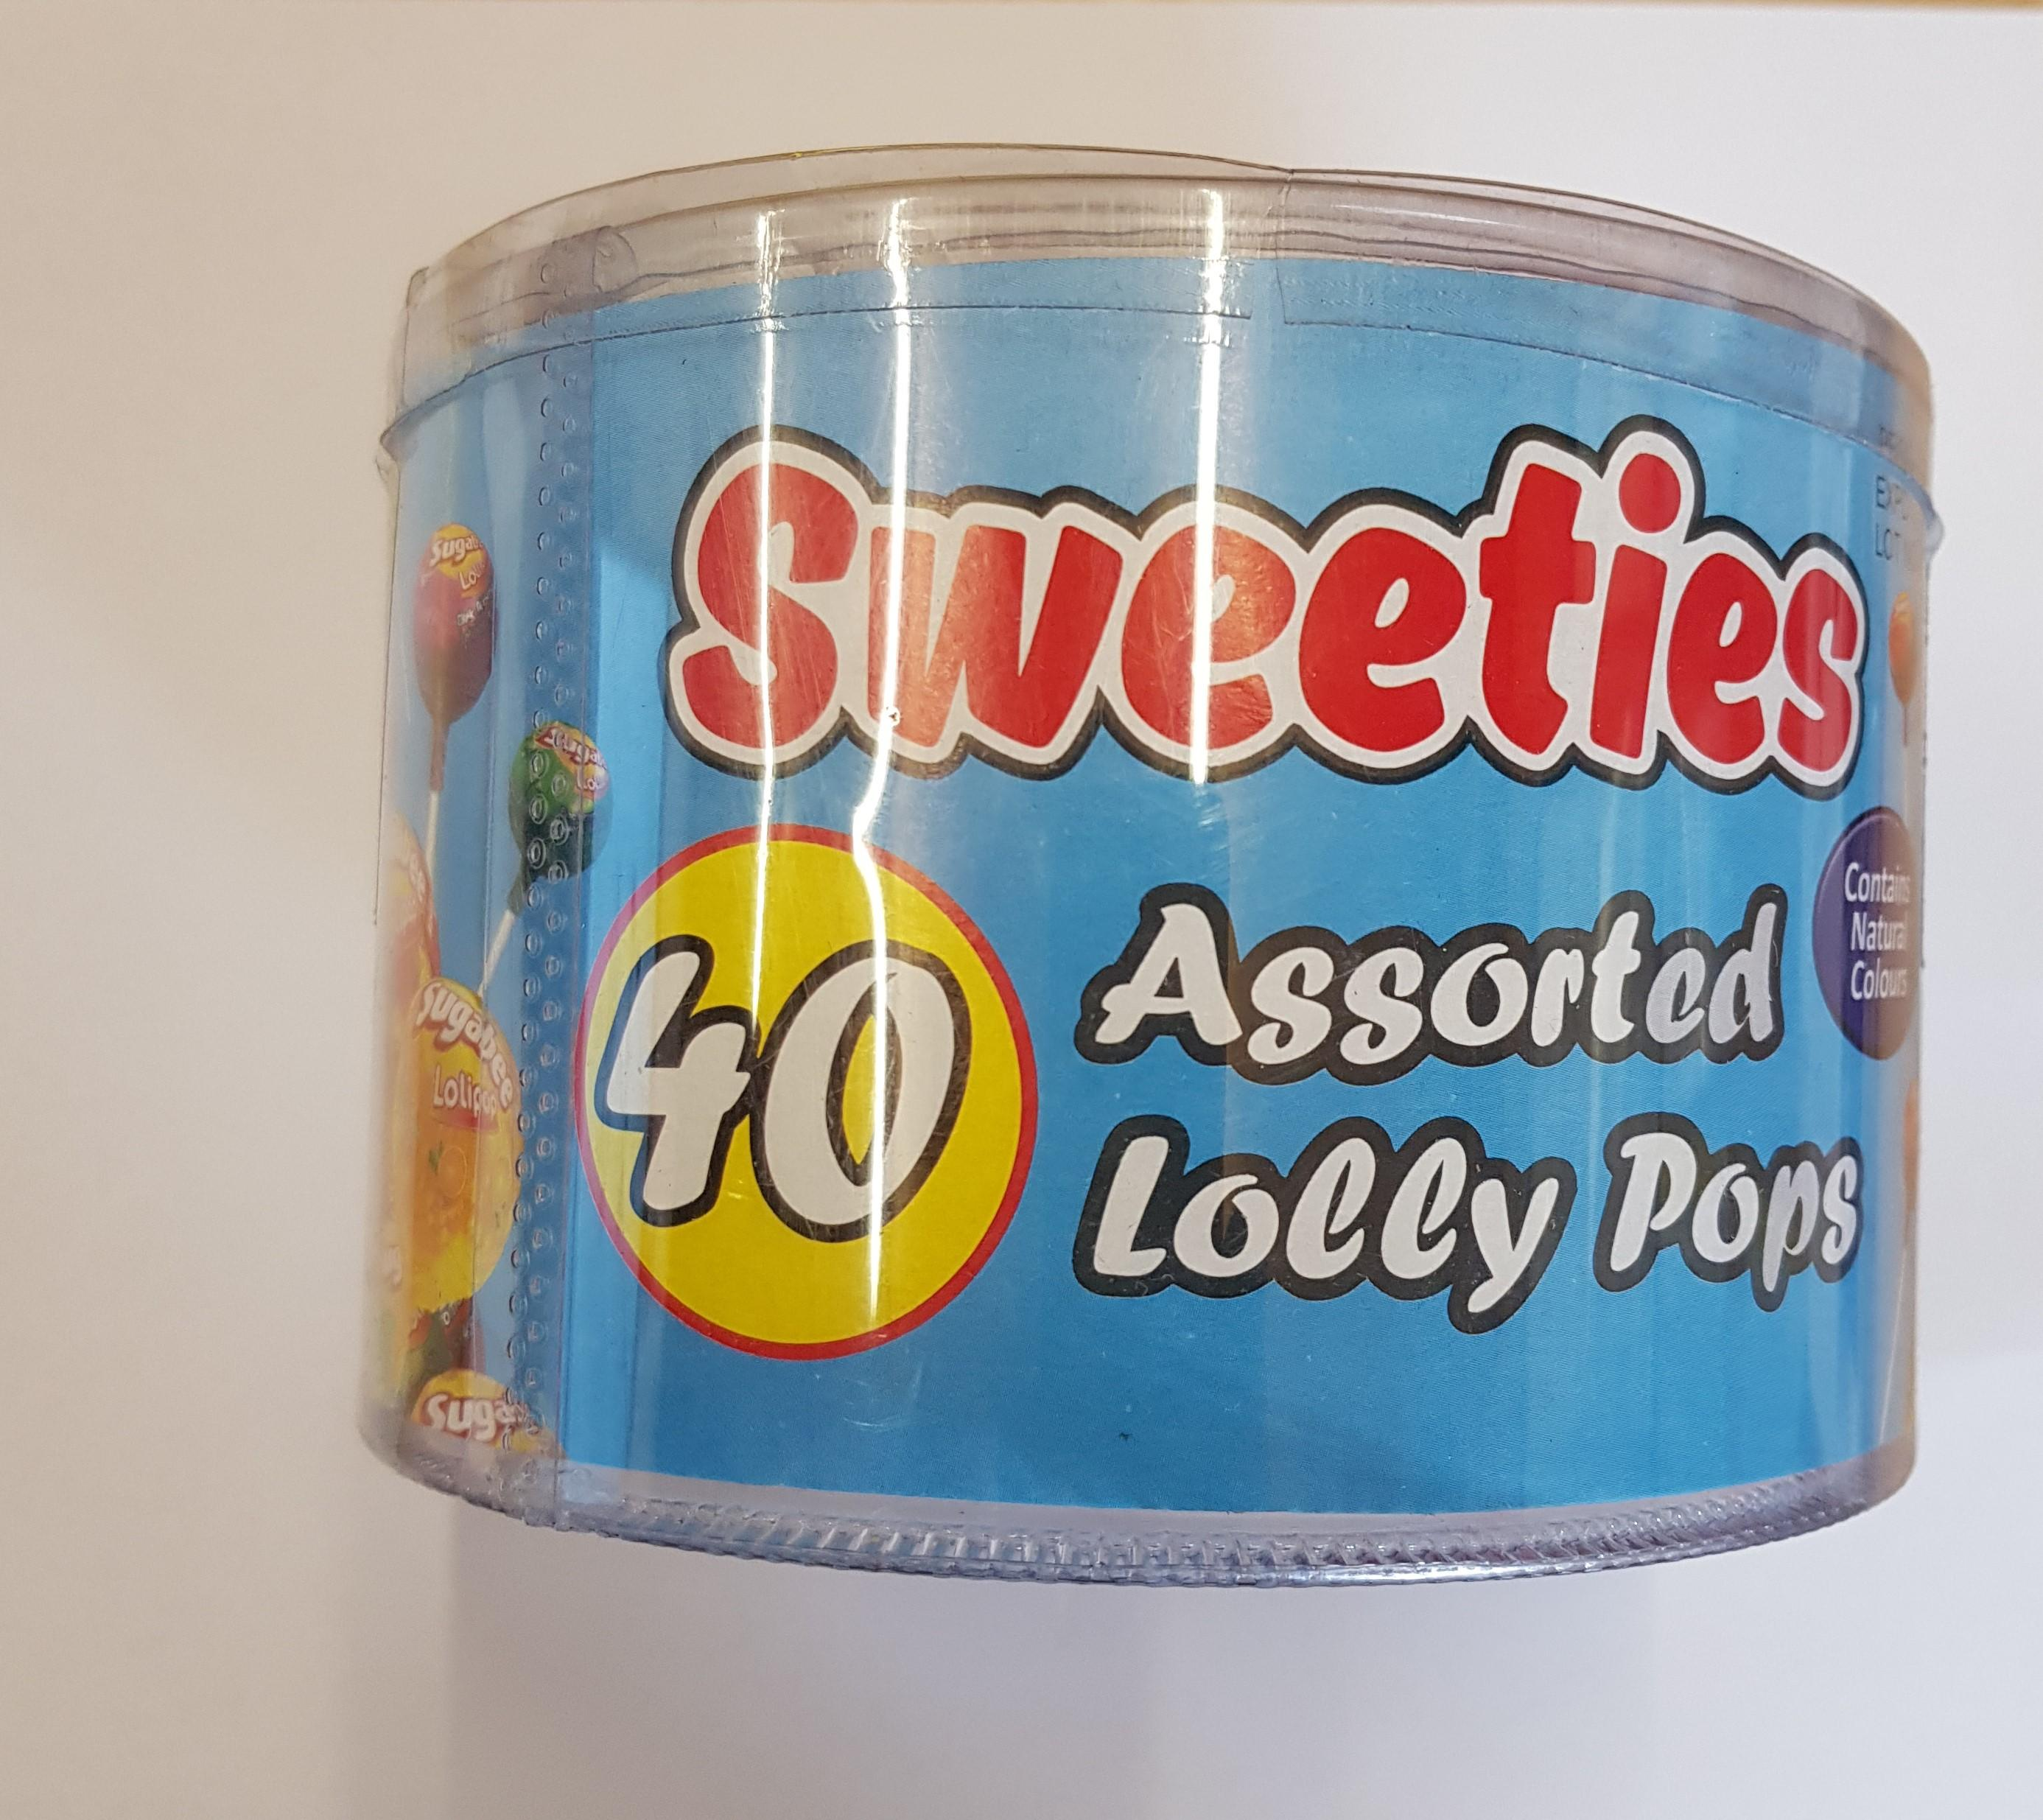 Sweeties Lolly Pops Tub x12